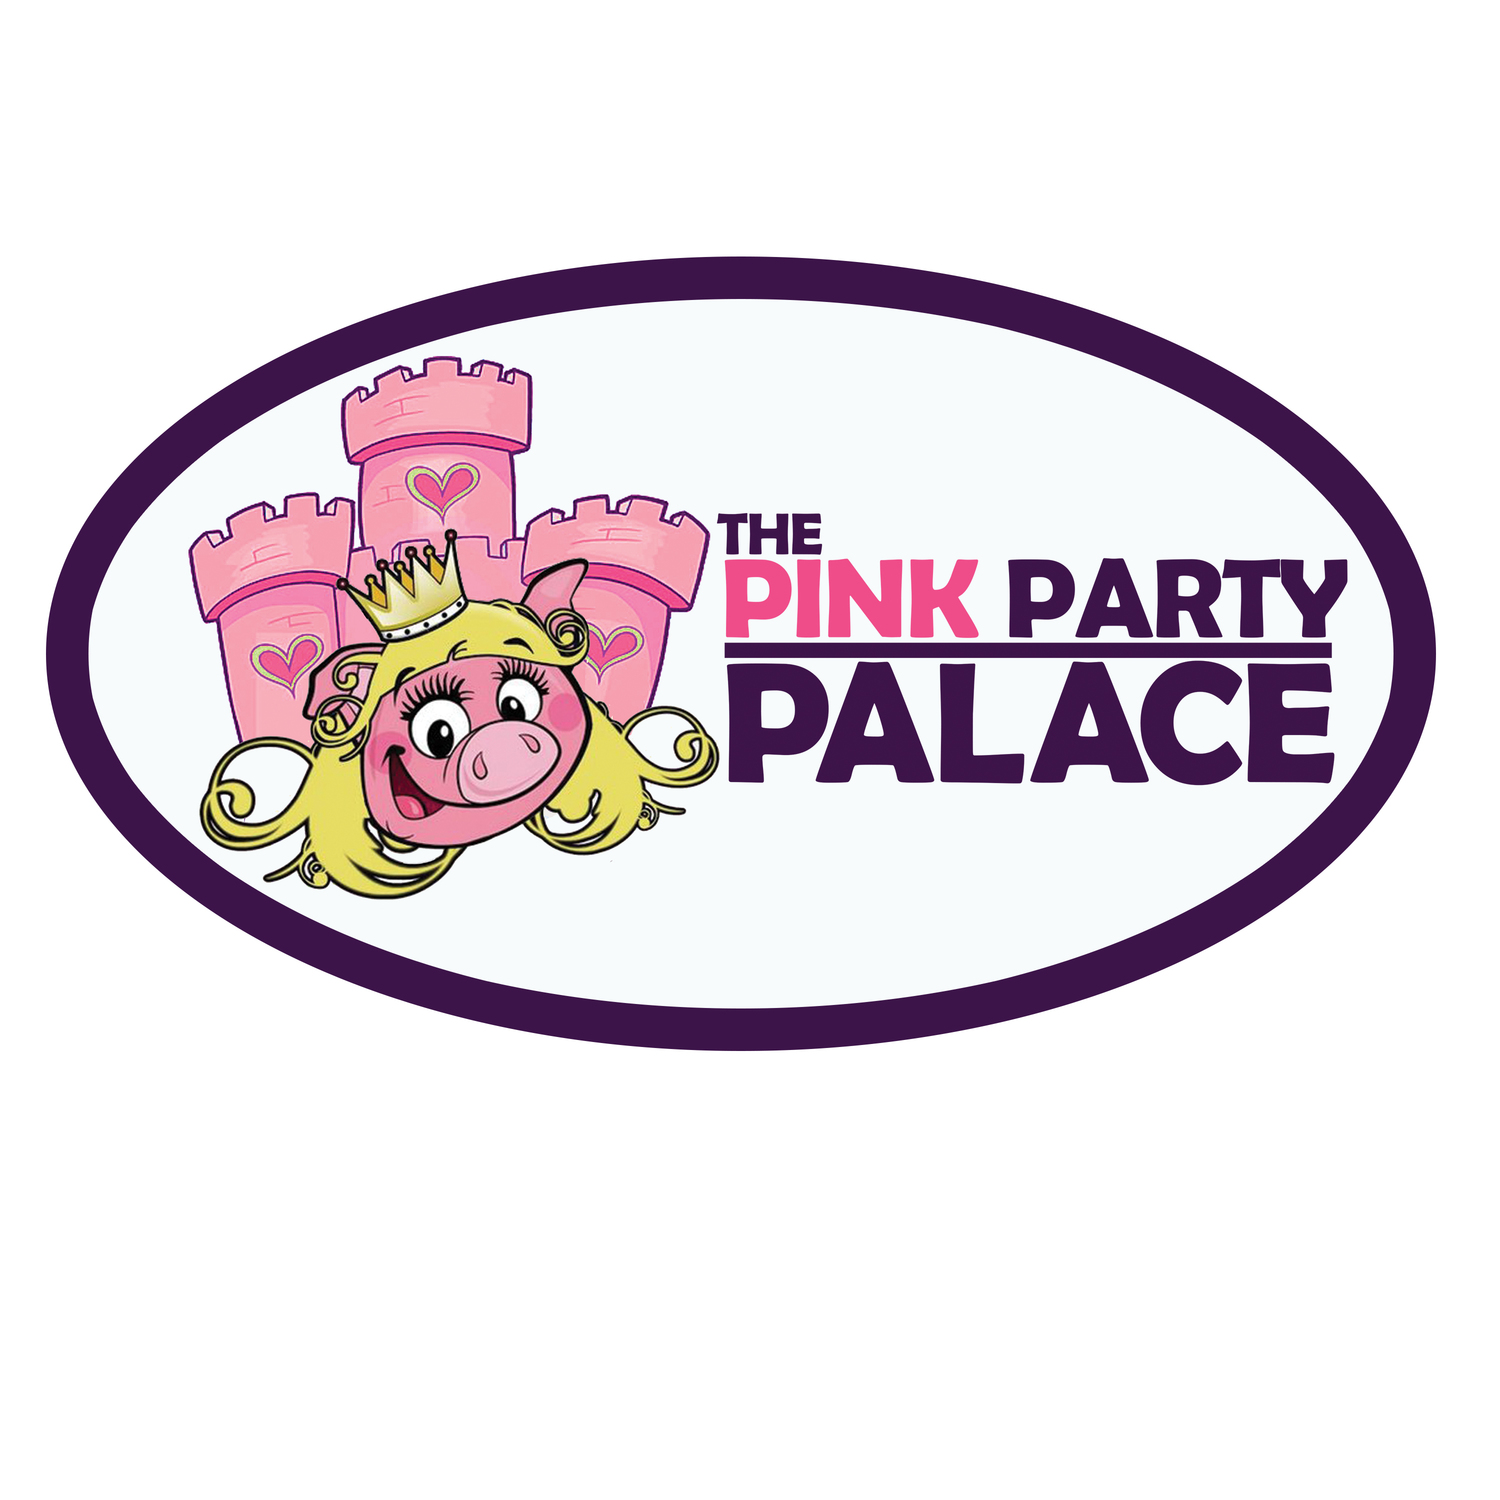 Welcome to The Pink Party Palace